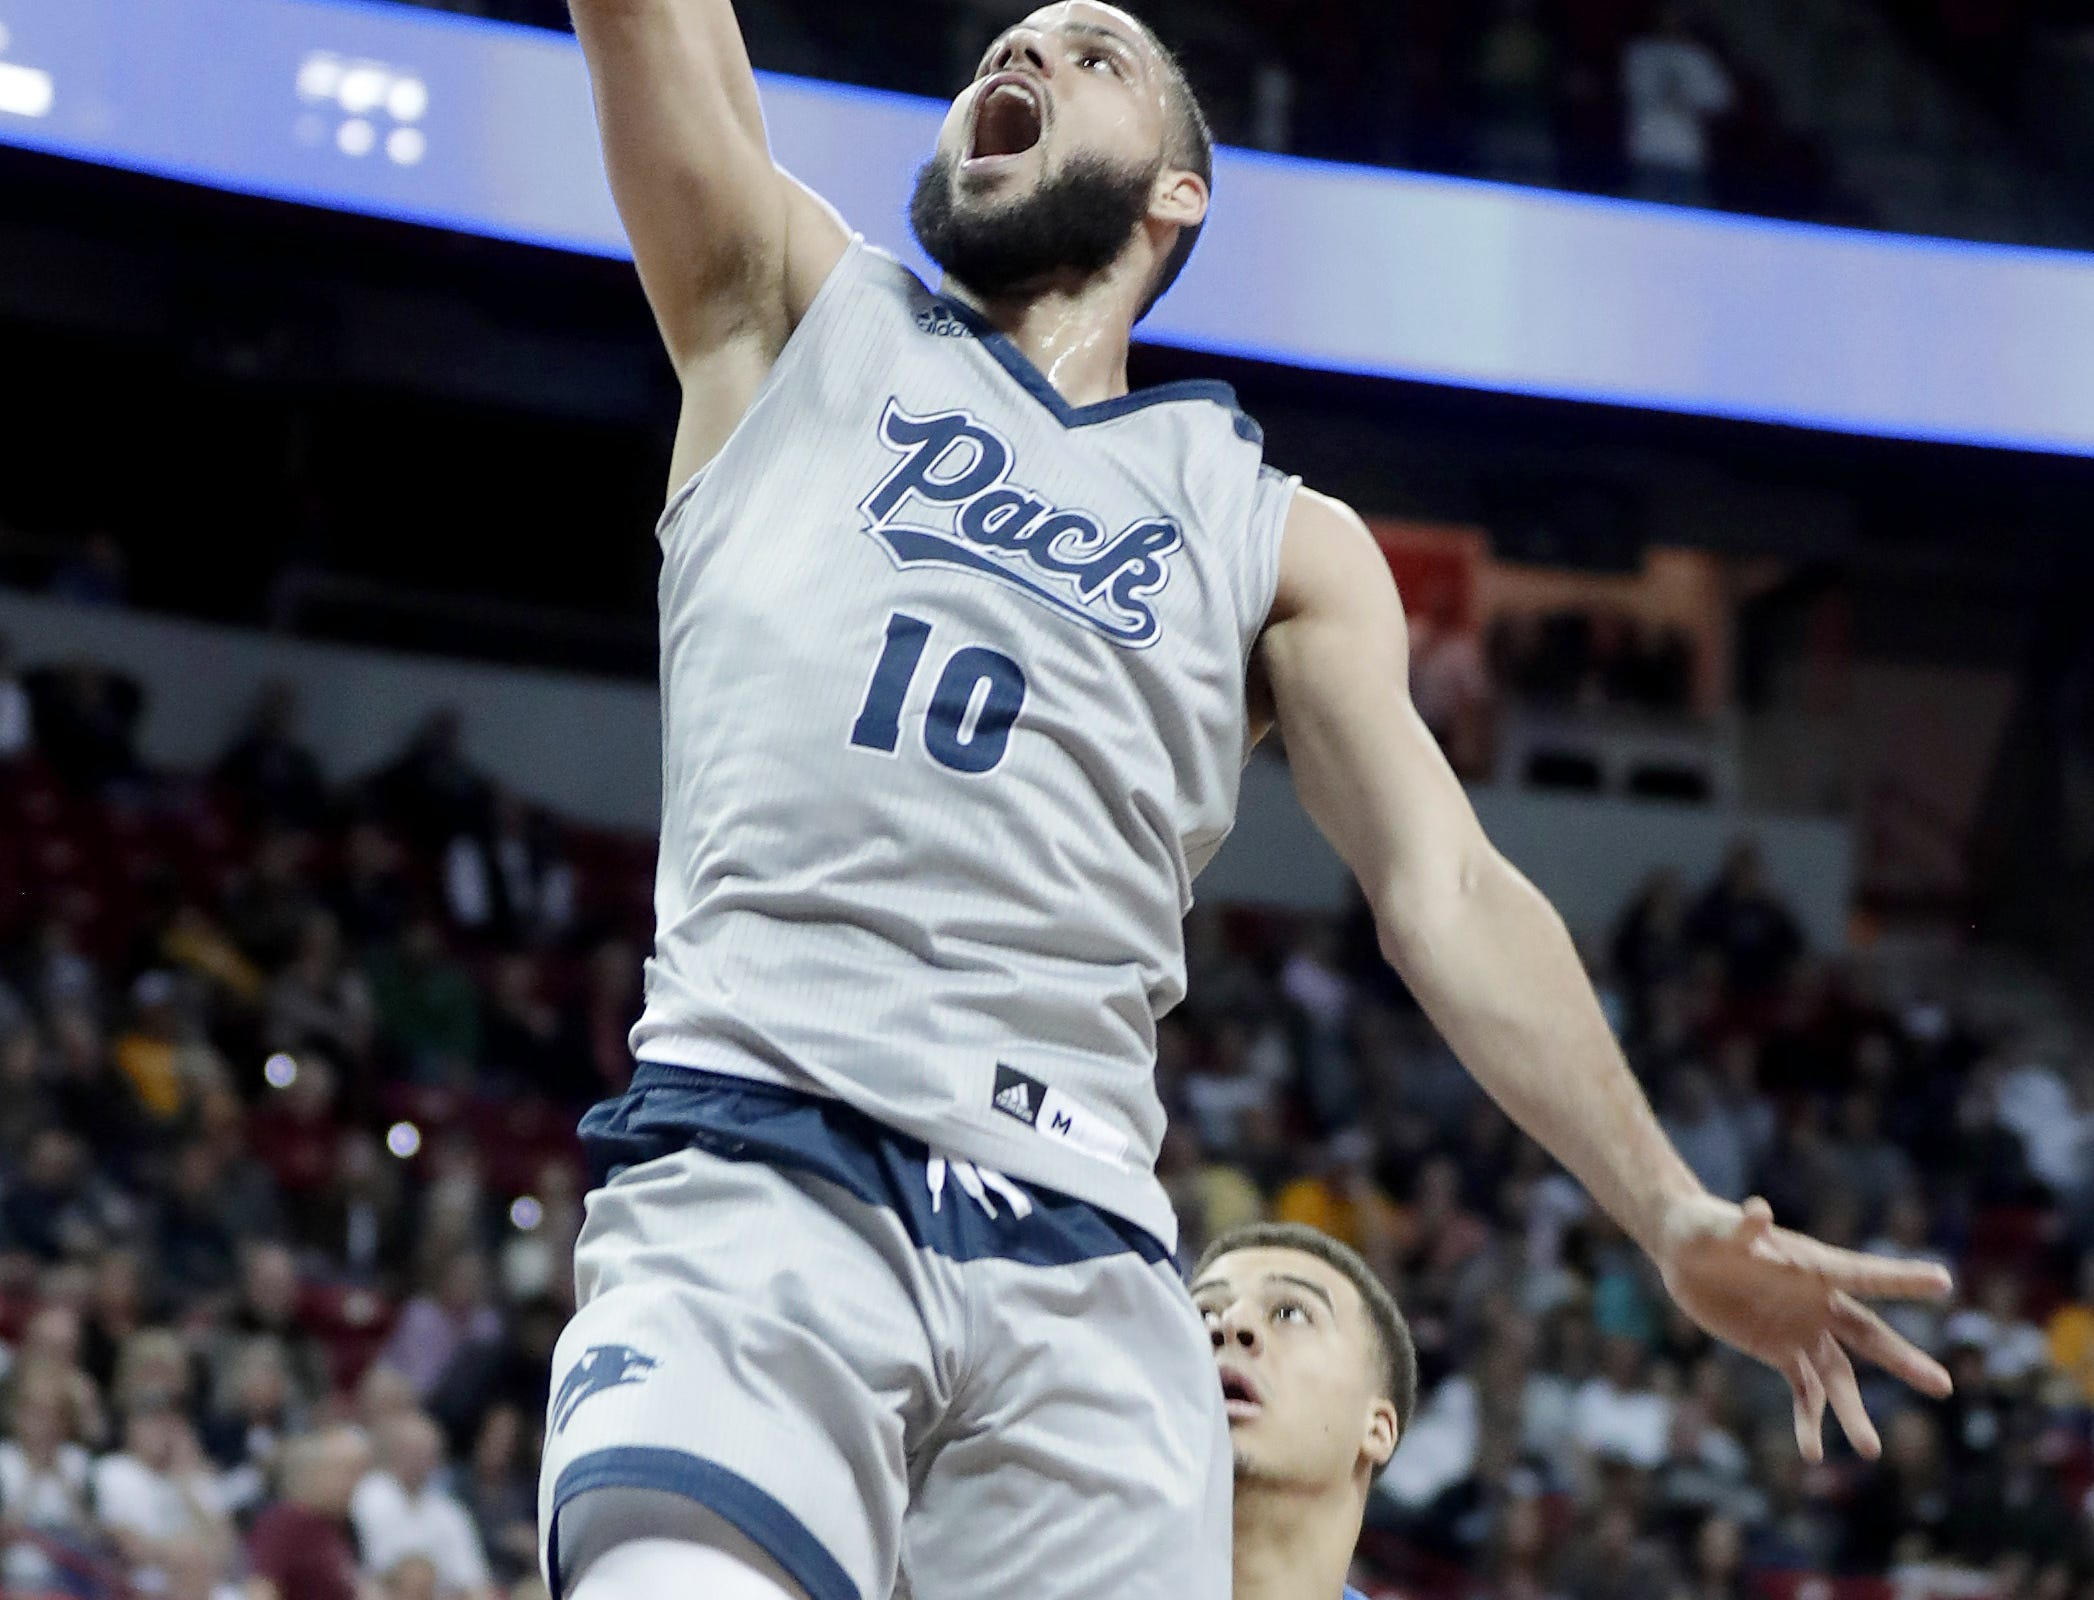 Nevada's Caleb Martin shoots during the first half of an NCAA college basketball game against Boise State in the Mountain West Conference men's tournament Thursday, March 14, 2019, in Las Vegas.